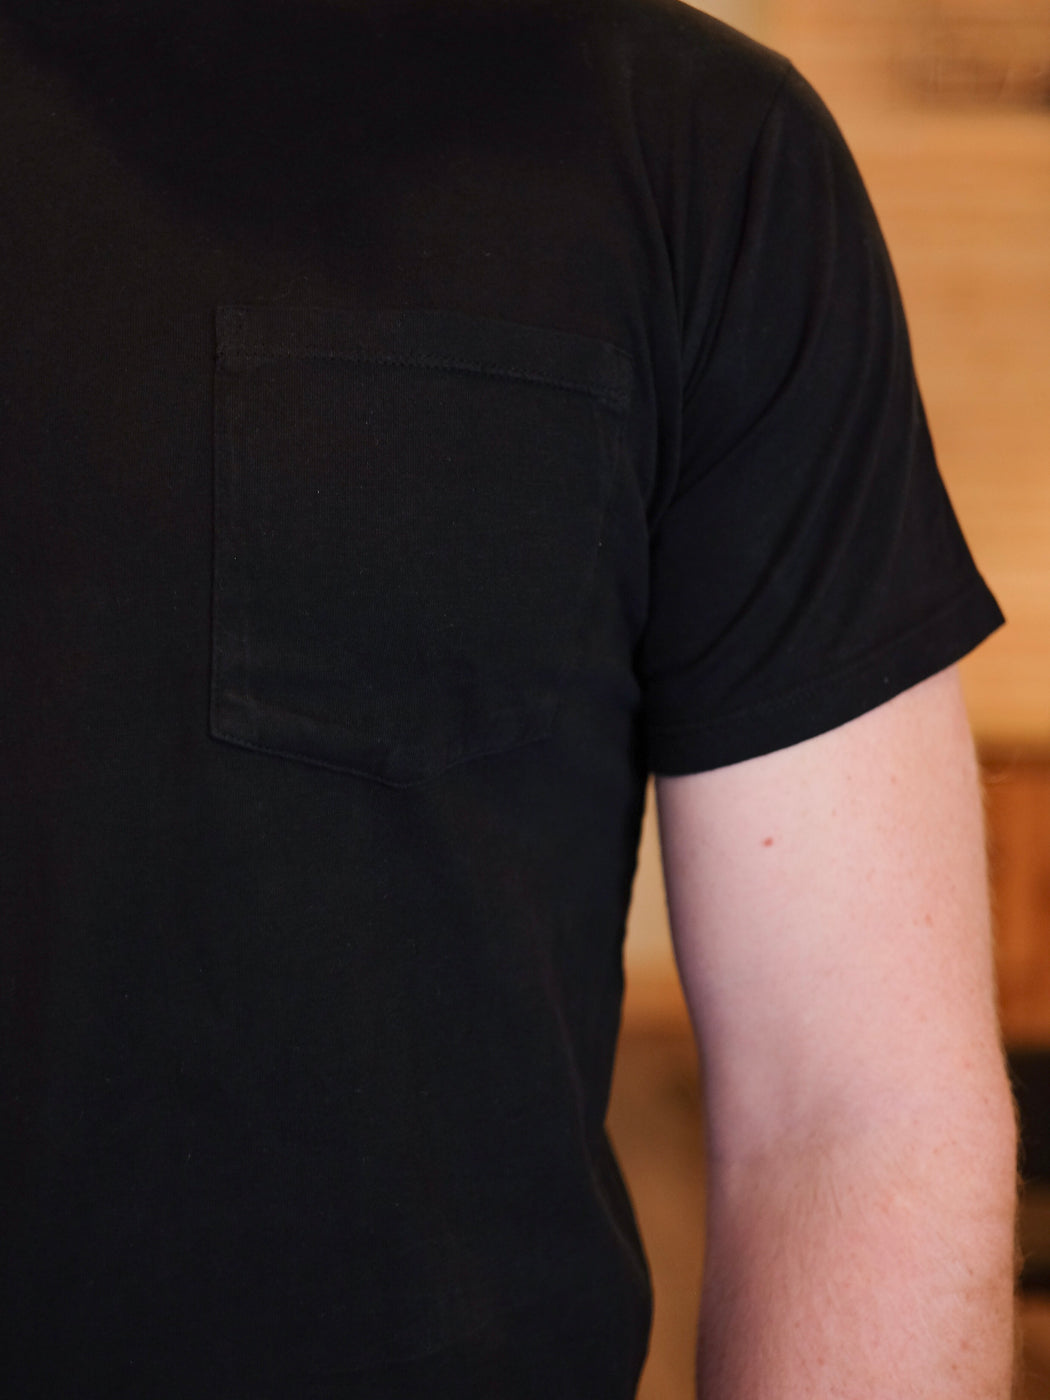 Pocket Tee Shirt, Tellason, - Felding Co